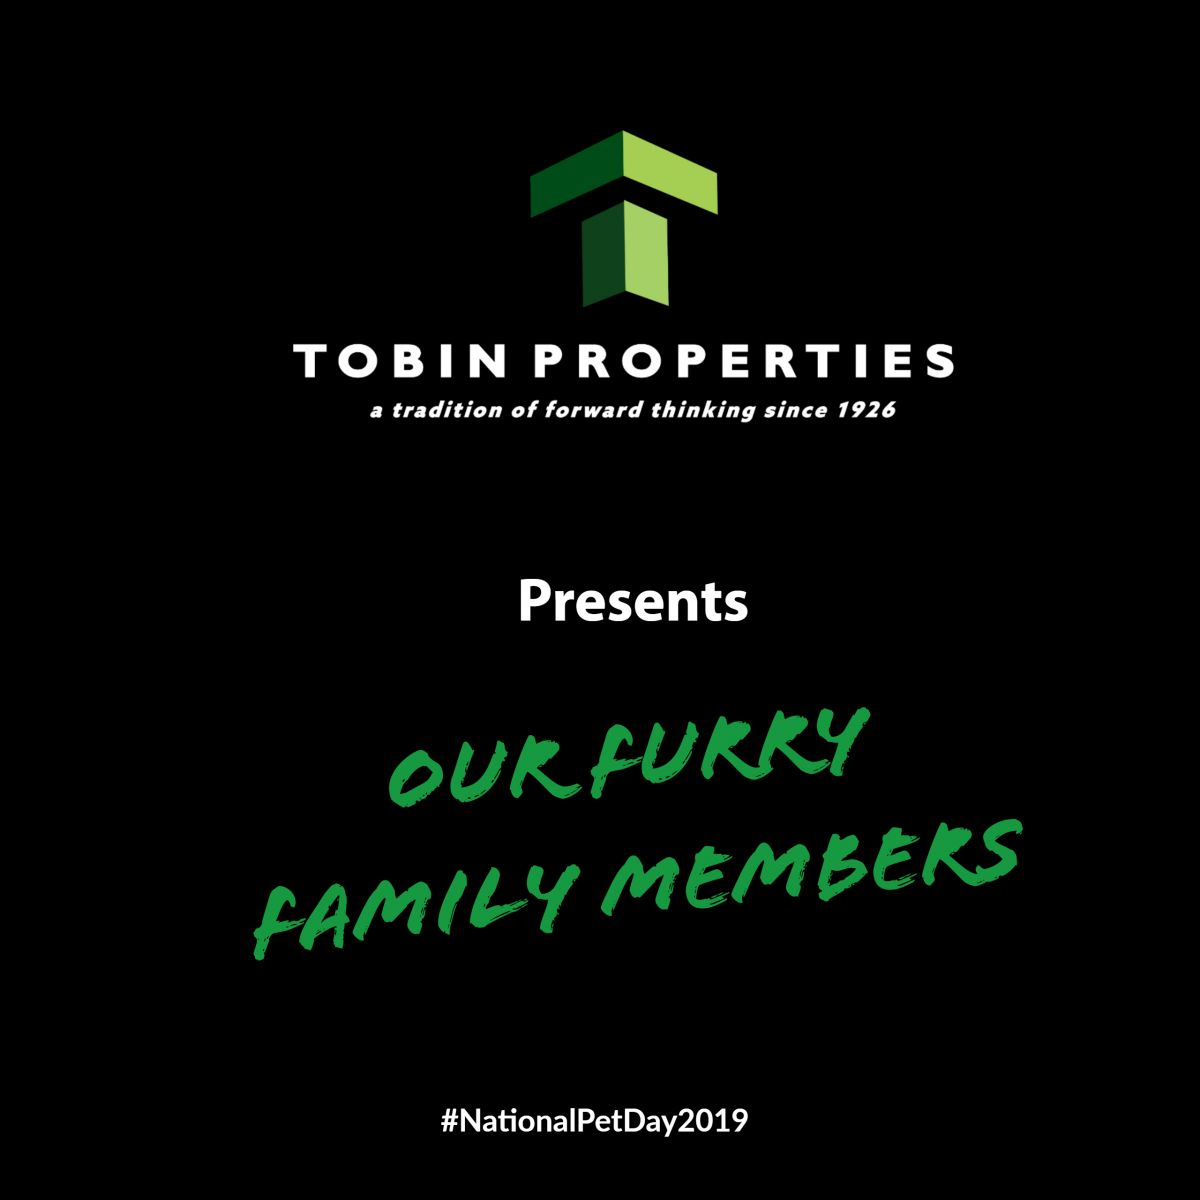 Video of Tobin Team furry babies in celebration of #NationalPetDay2019